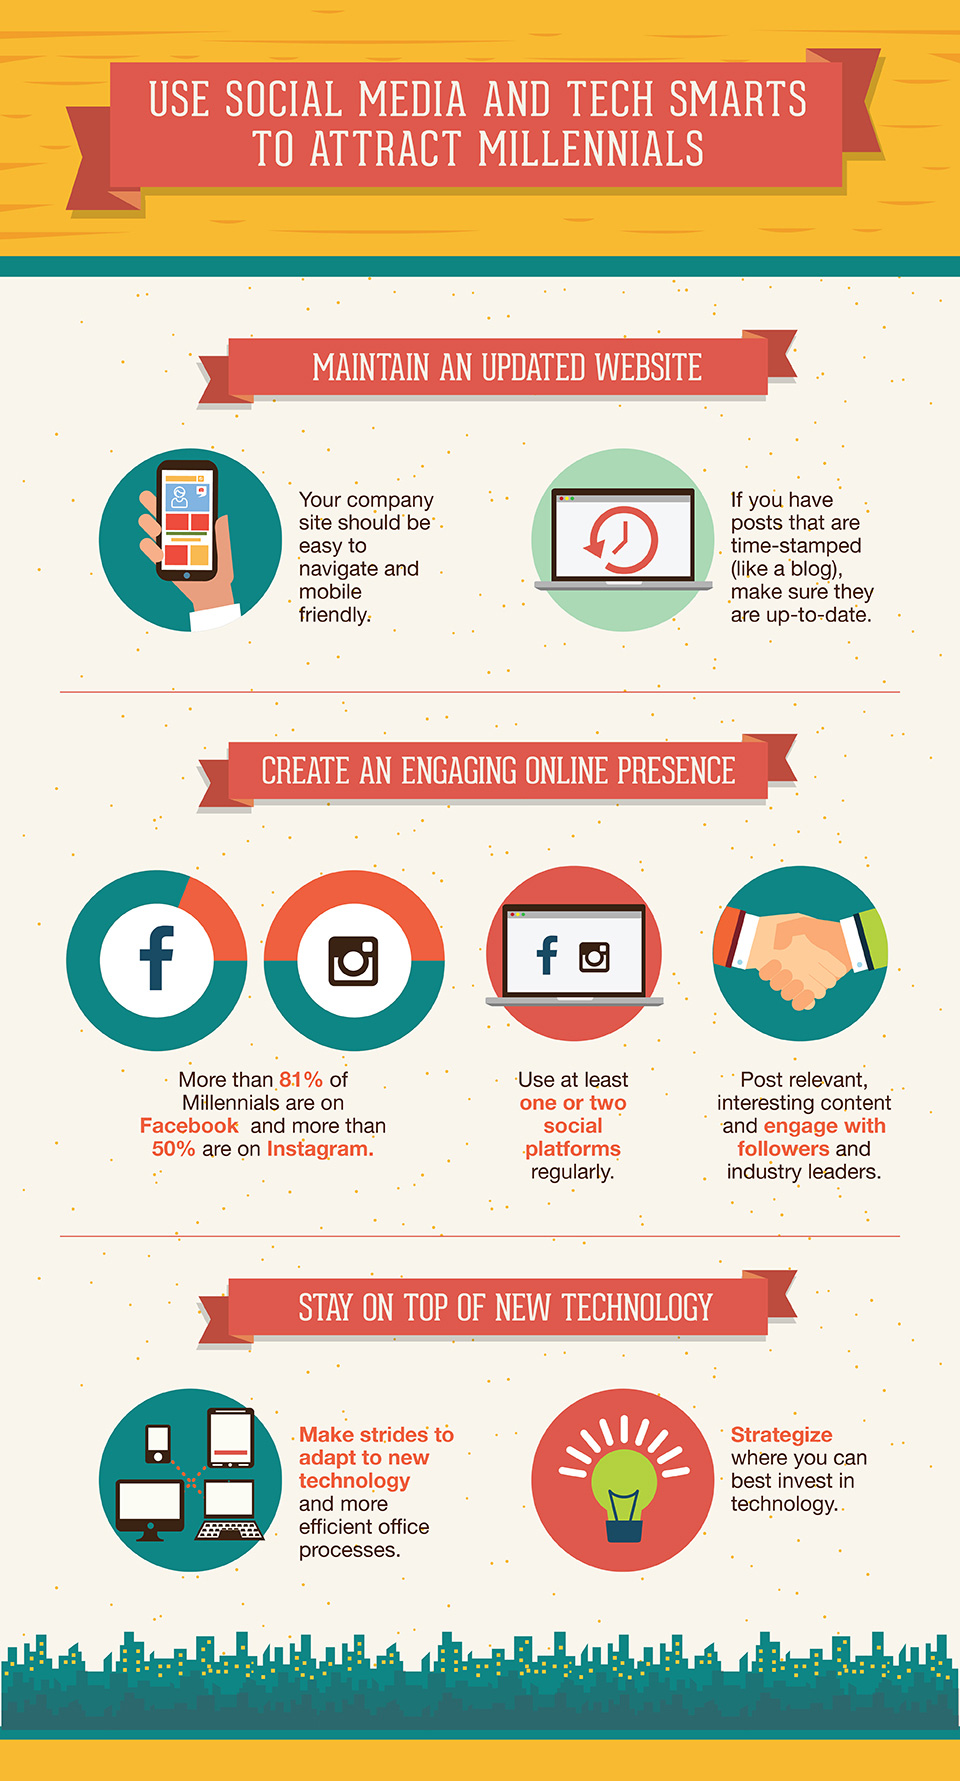 recruiting-millennial-talent-infographic-2